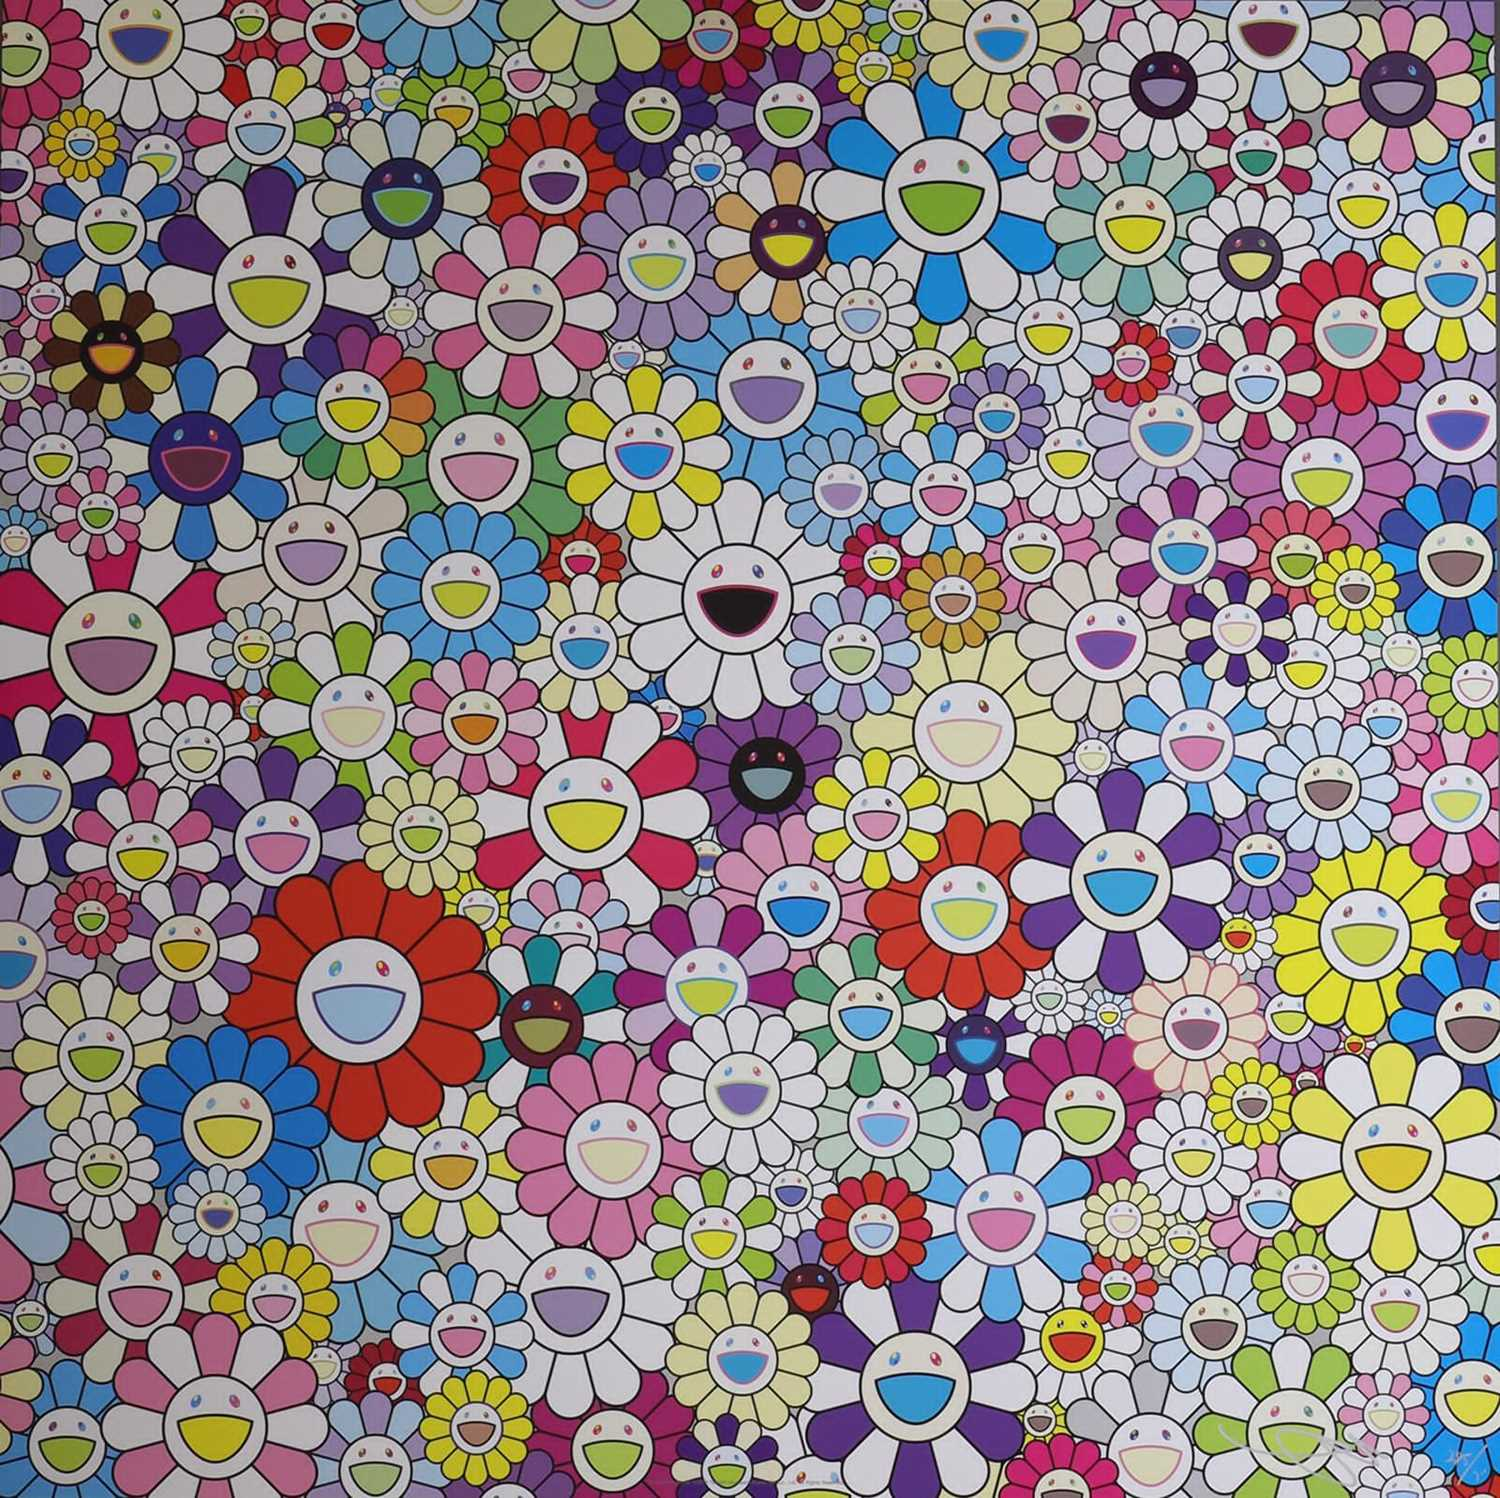 Lot 27 - Takashi Murakami (Japanese 1962-)